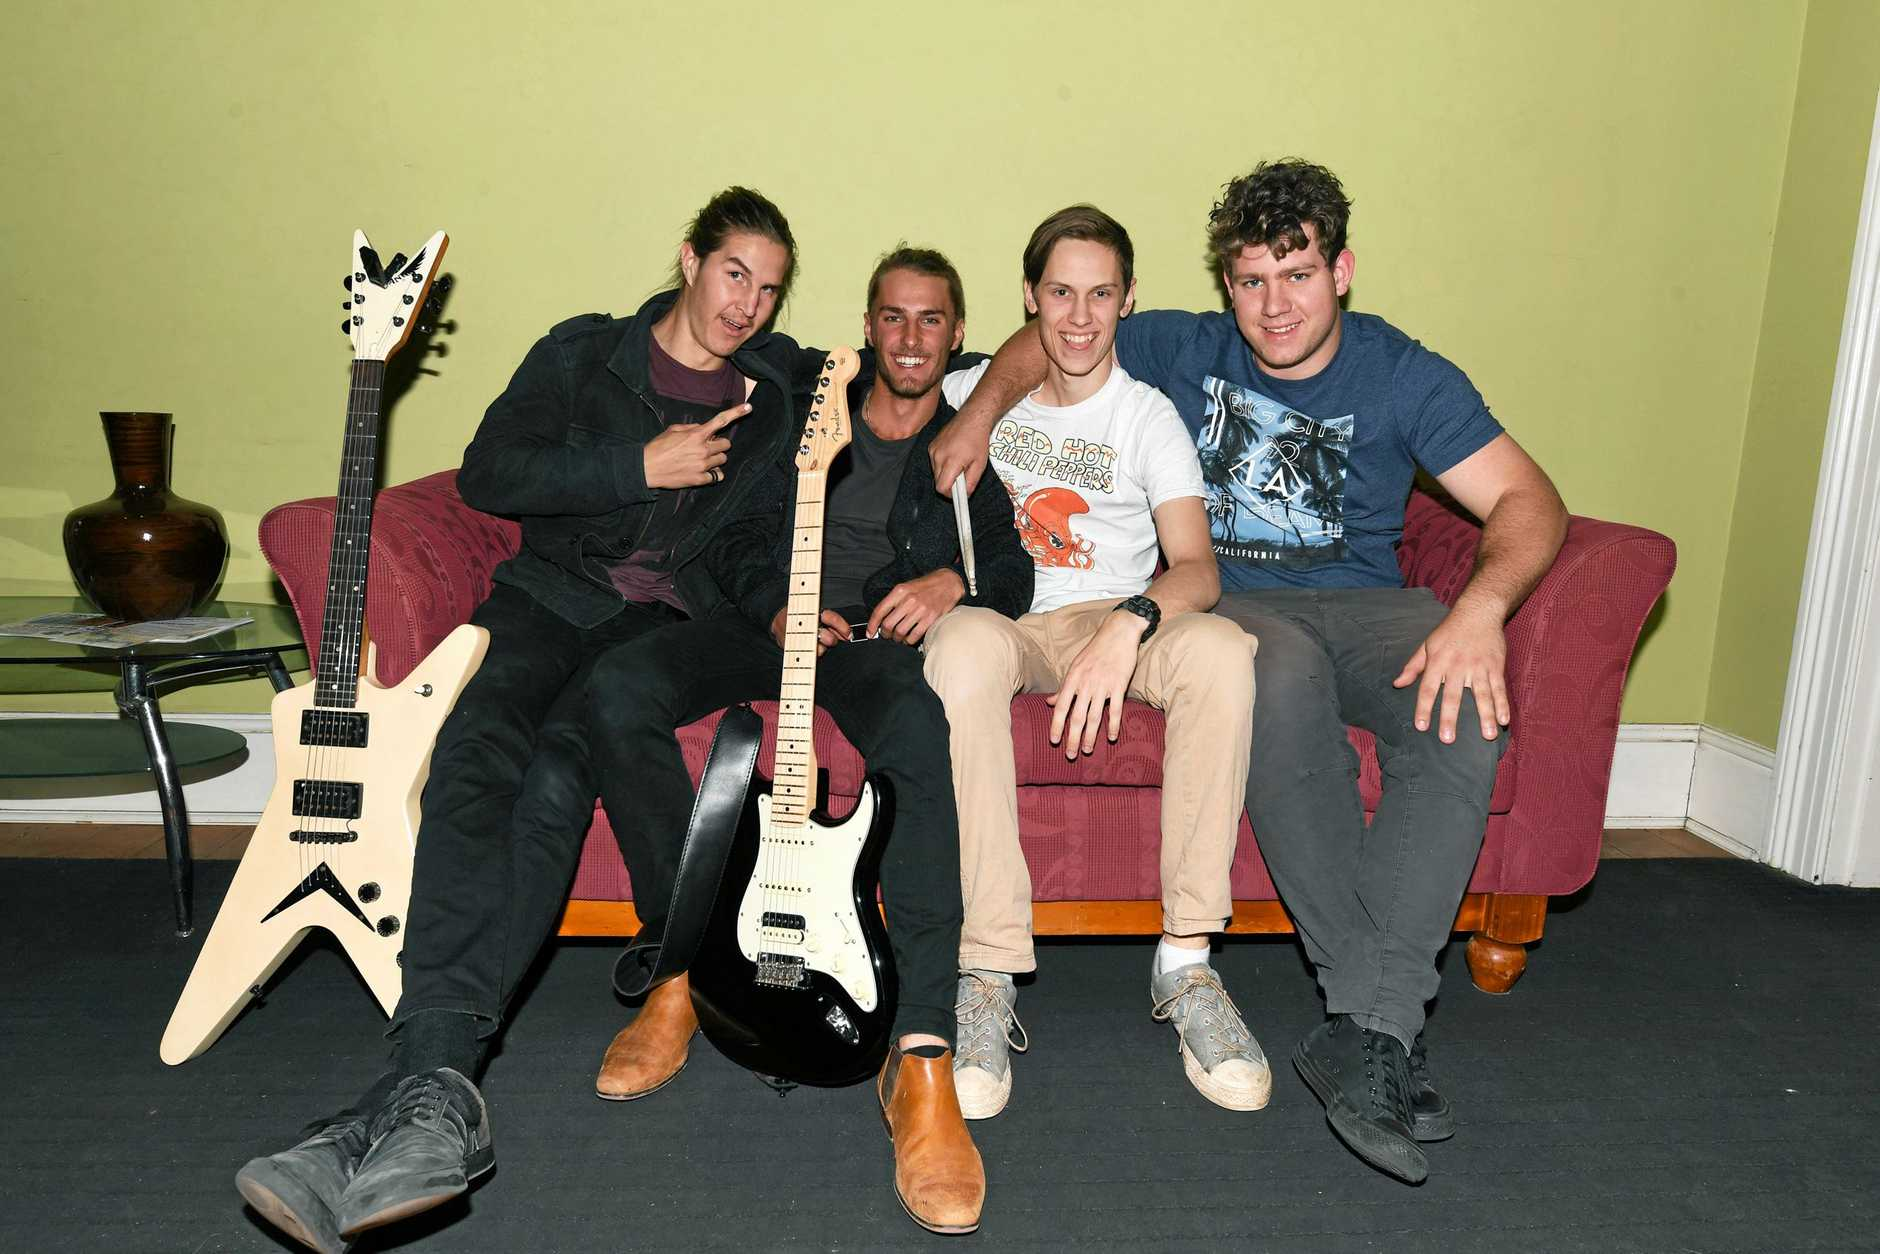 The AICM in Channon St for RockSchool Band Showdown- BLANK CANVAS -  Jackson Allan, Jake Gibbs, Mikah Gatward, Brendon Crowther